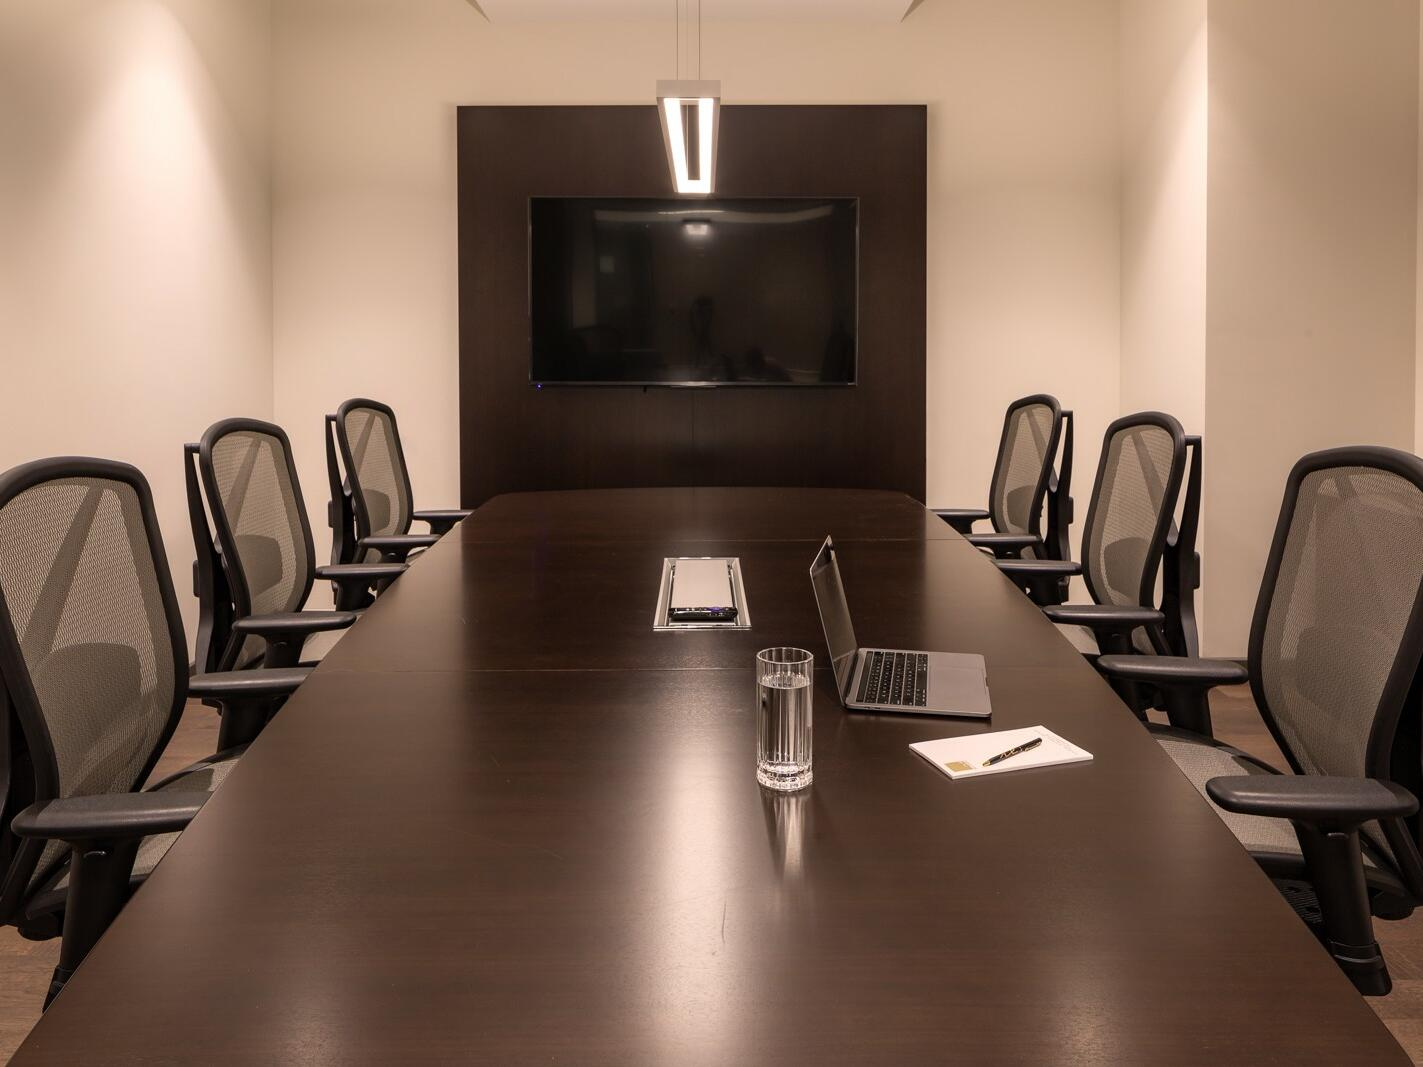 metting room with conference table